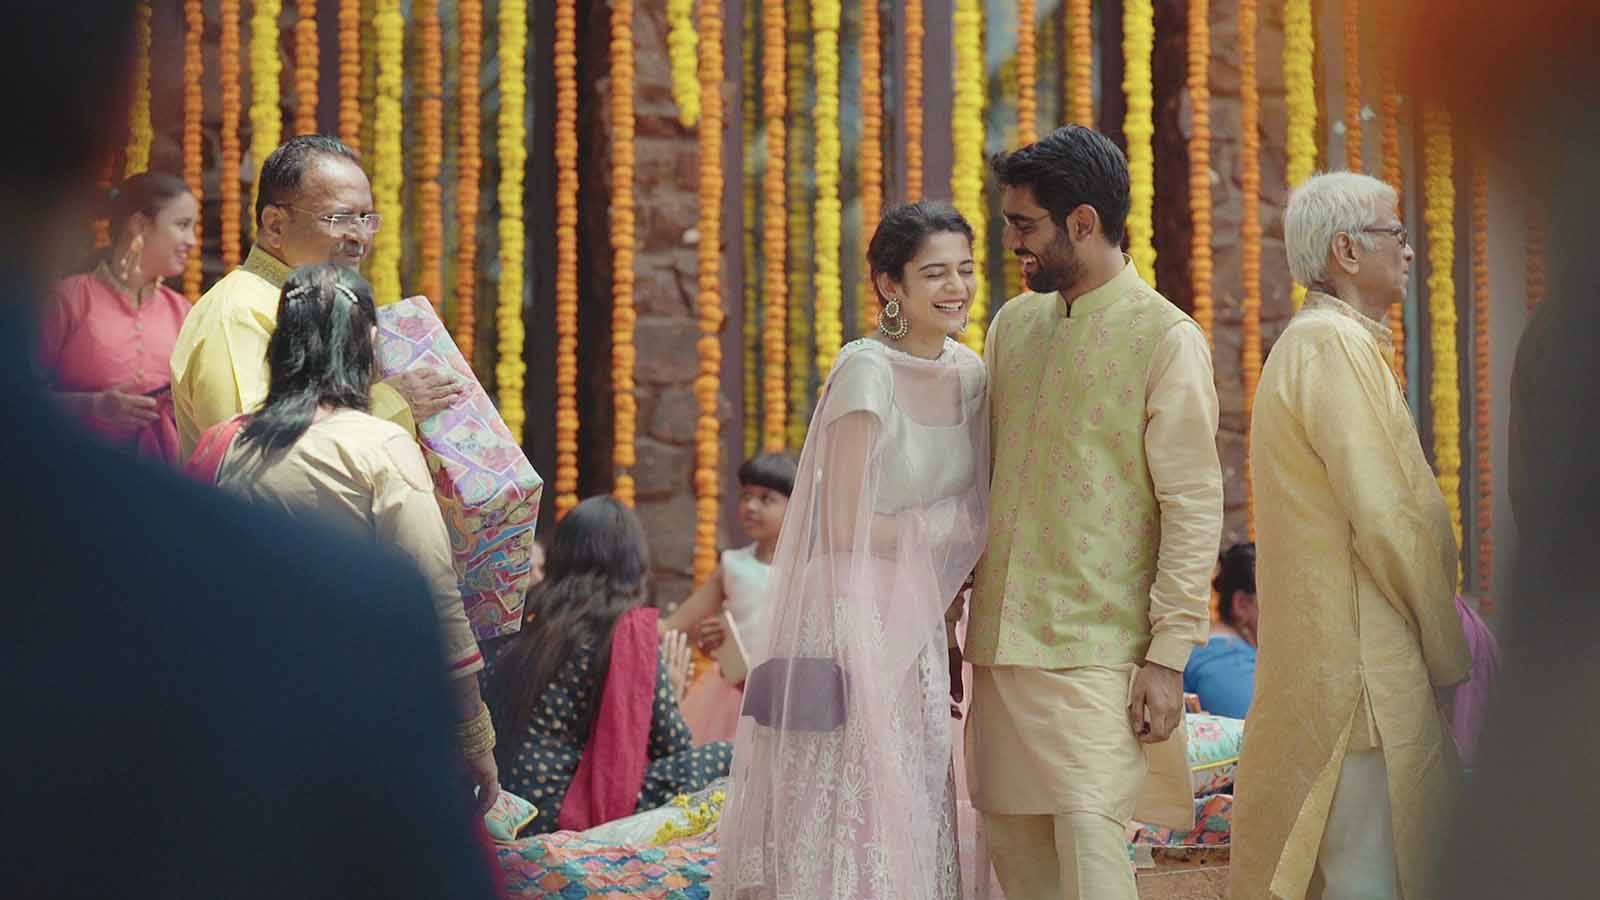 Since 'Little Things' found a new home on Netflix, the Indian dramady has only grown bigger. But if you still haven't watched it, you need to.